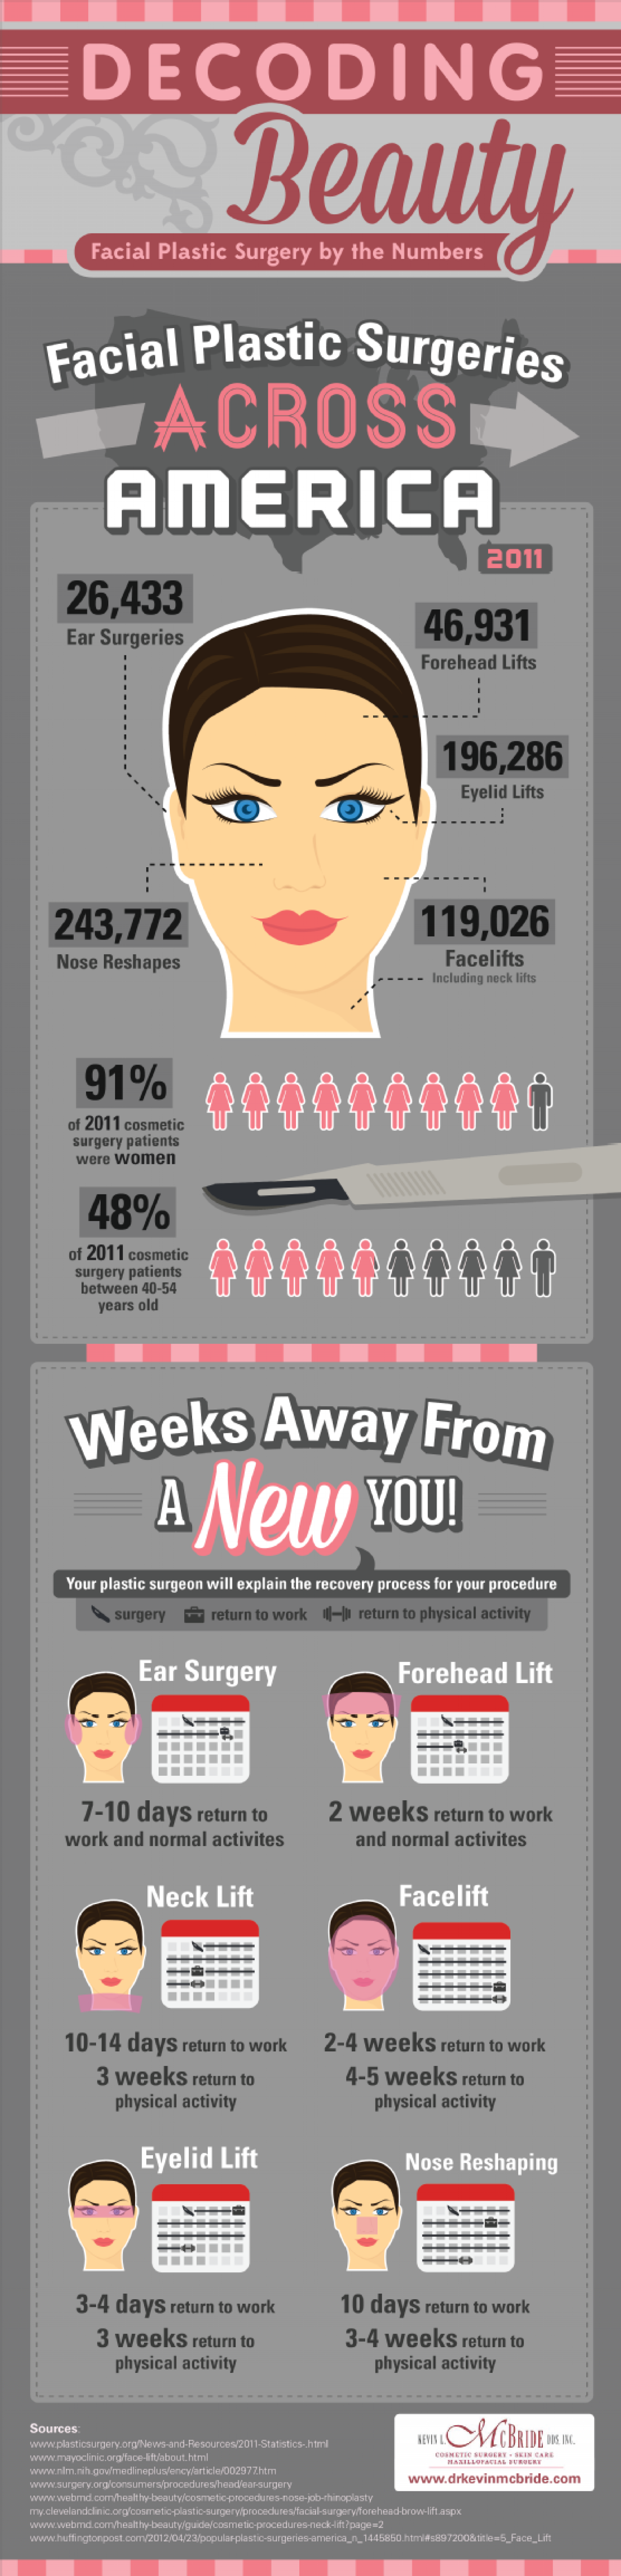 Decoding Beauty: Facial Plastic Surgery by the Numbers  Infographic